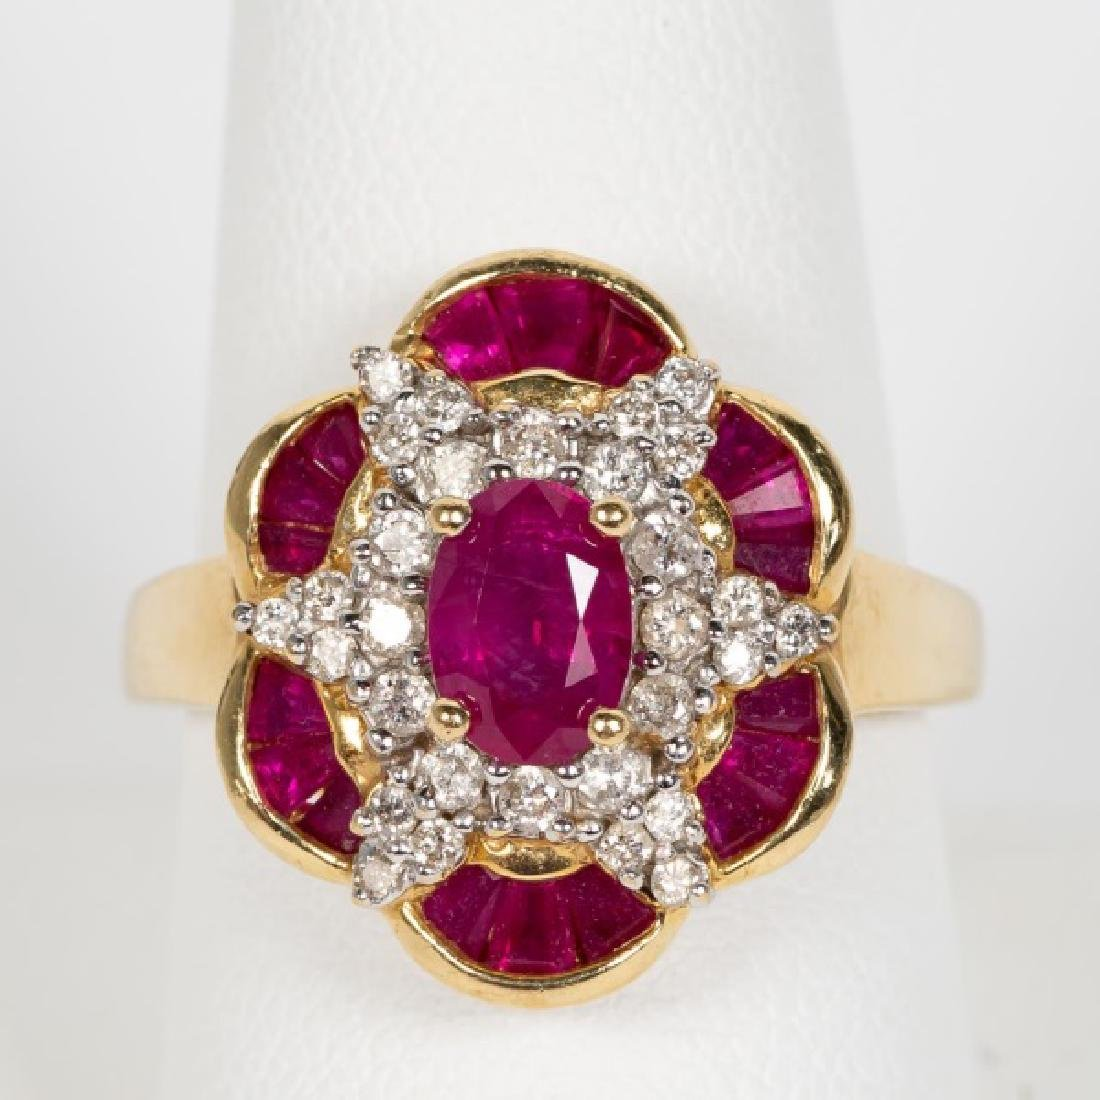 14k Yellow Gold, Ruby, & Diamond Ring